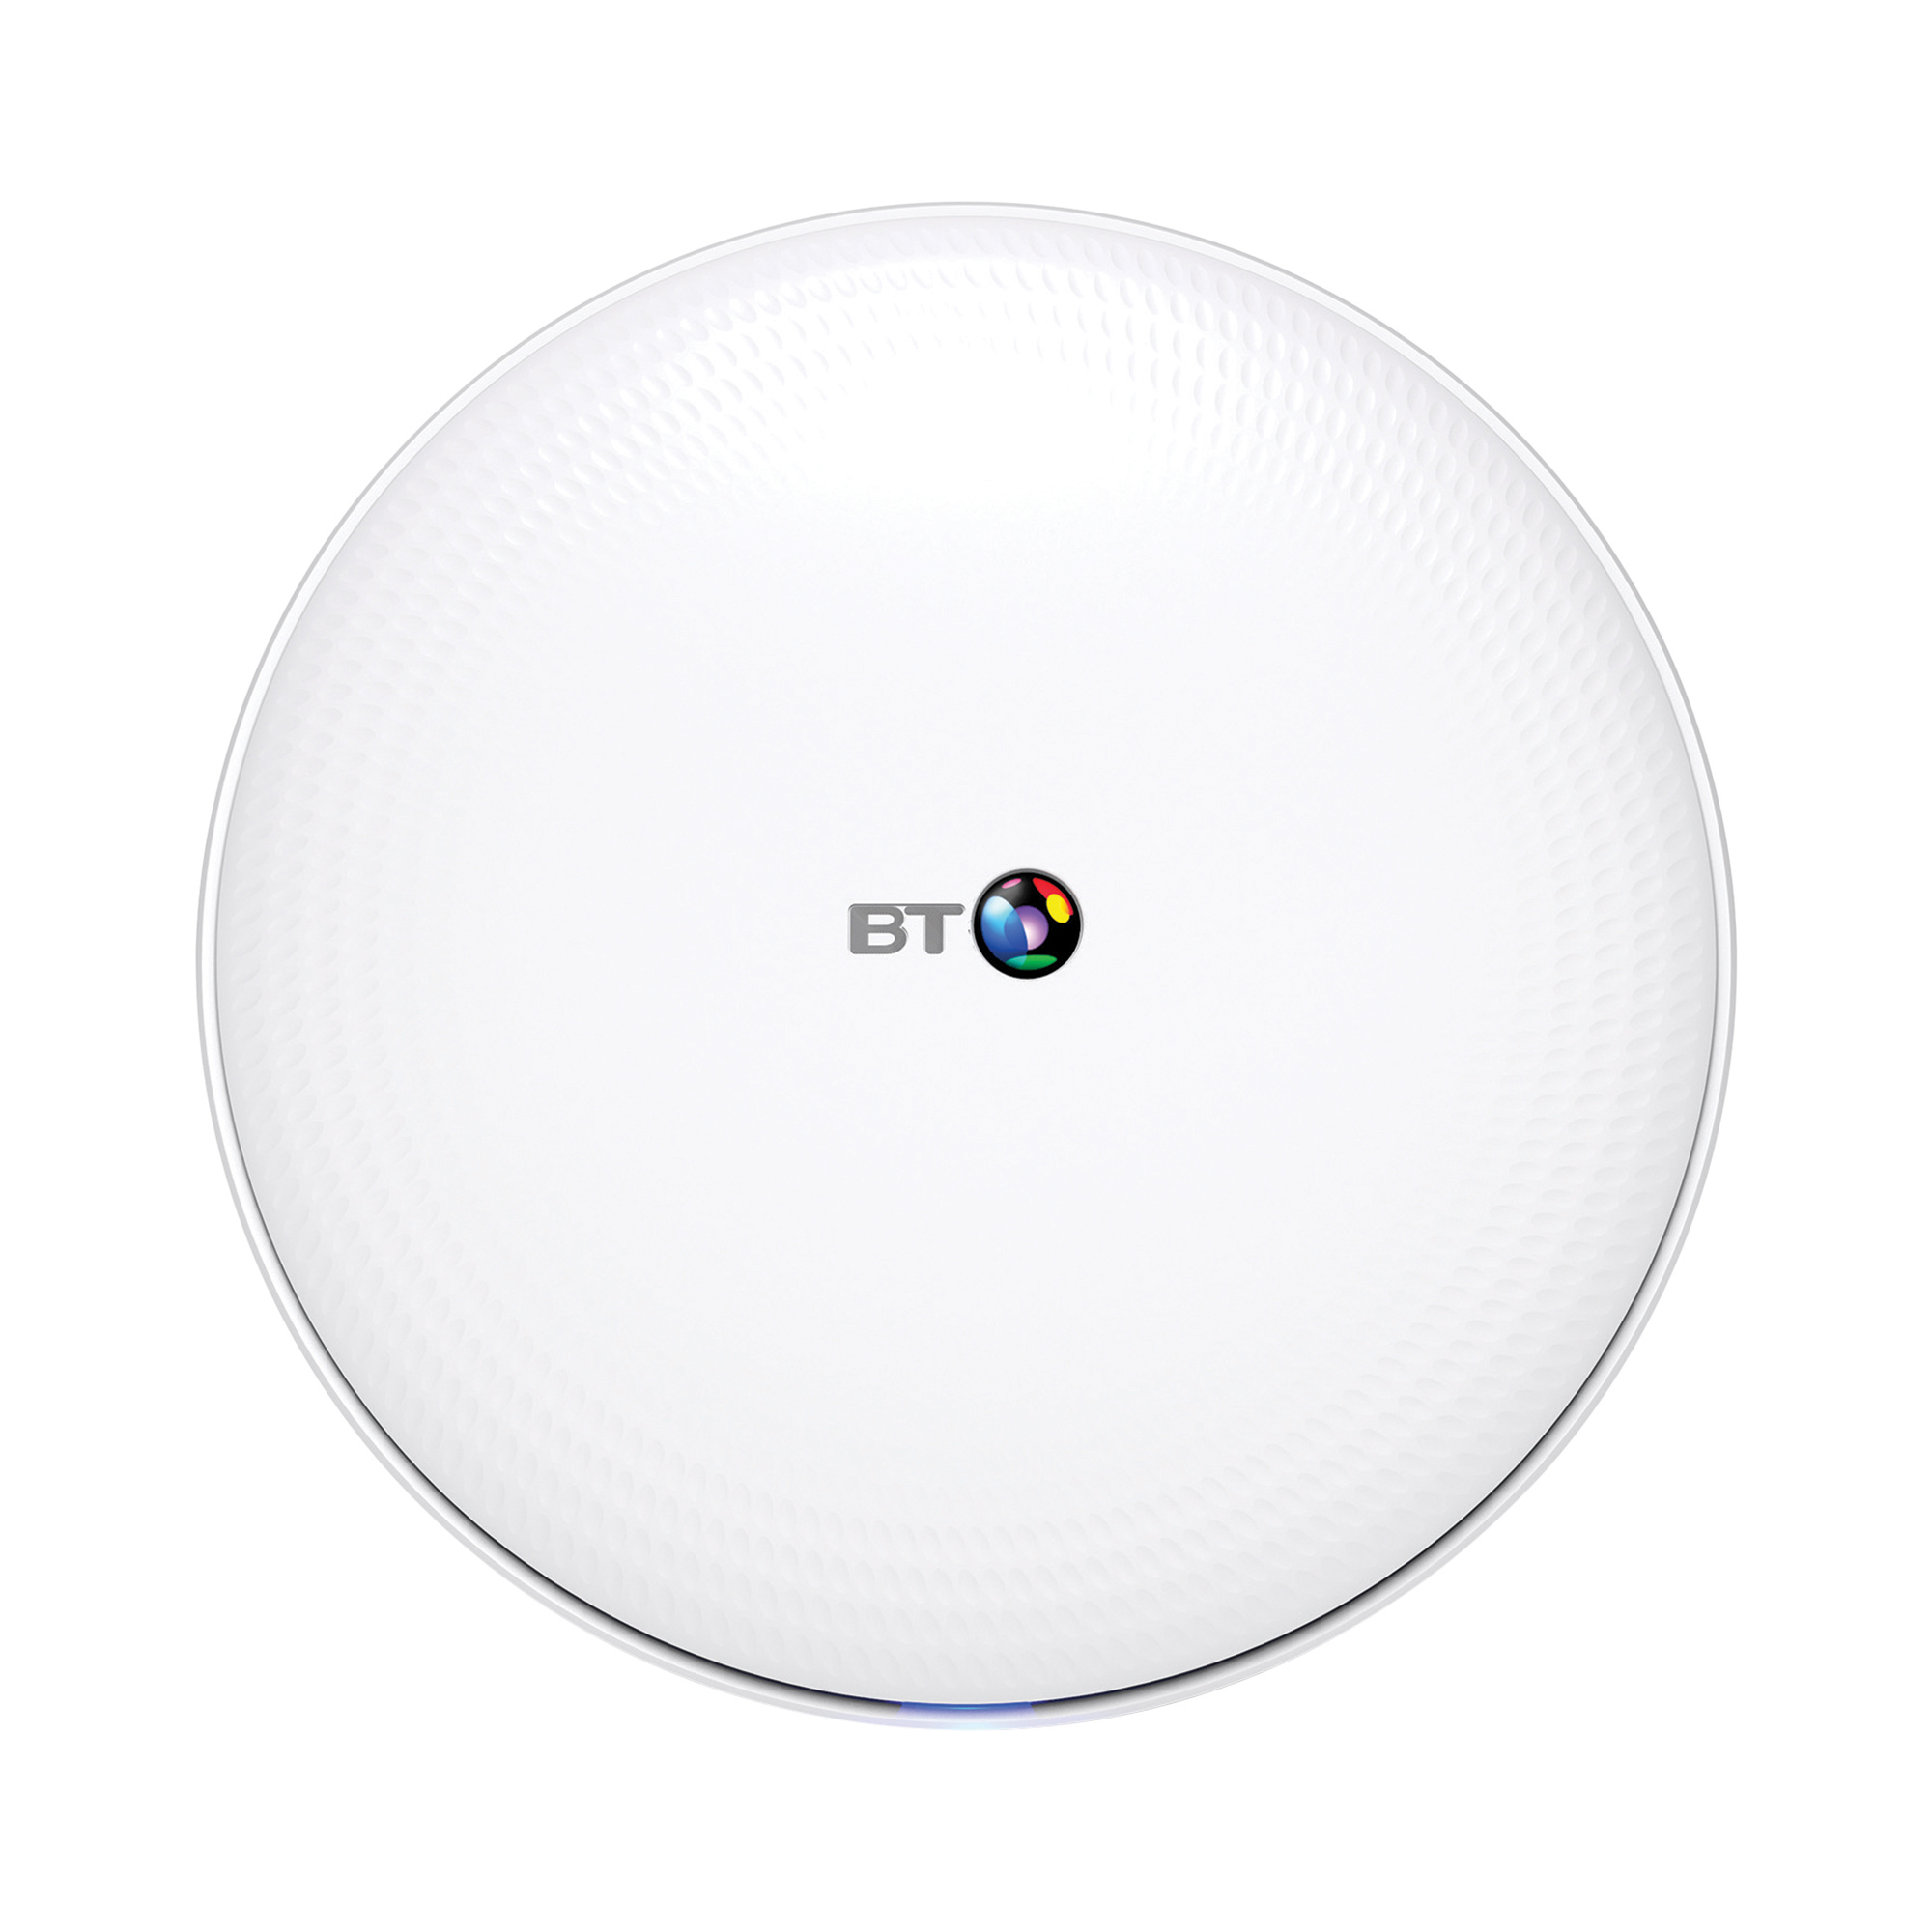 Image for BT Whole Home WiFi Additional To Extend Coverage White Ref 091073